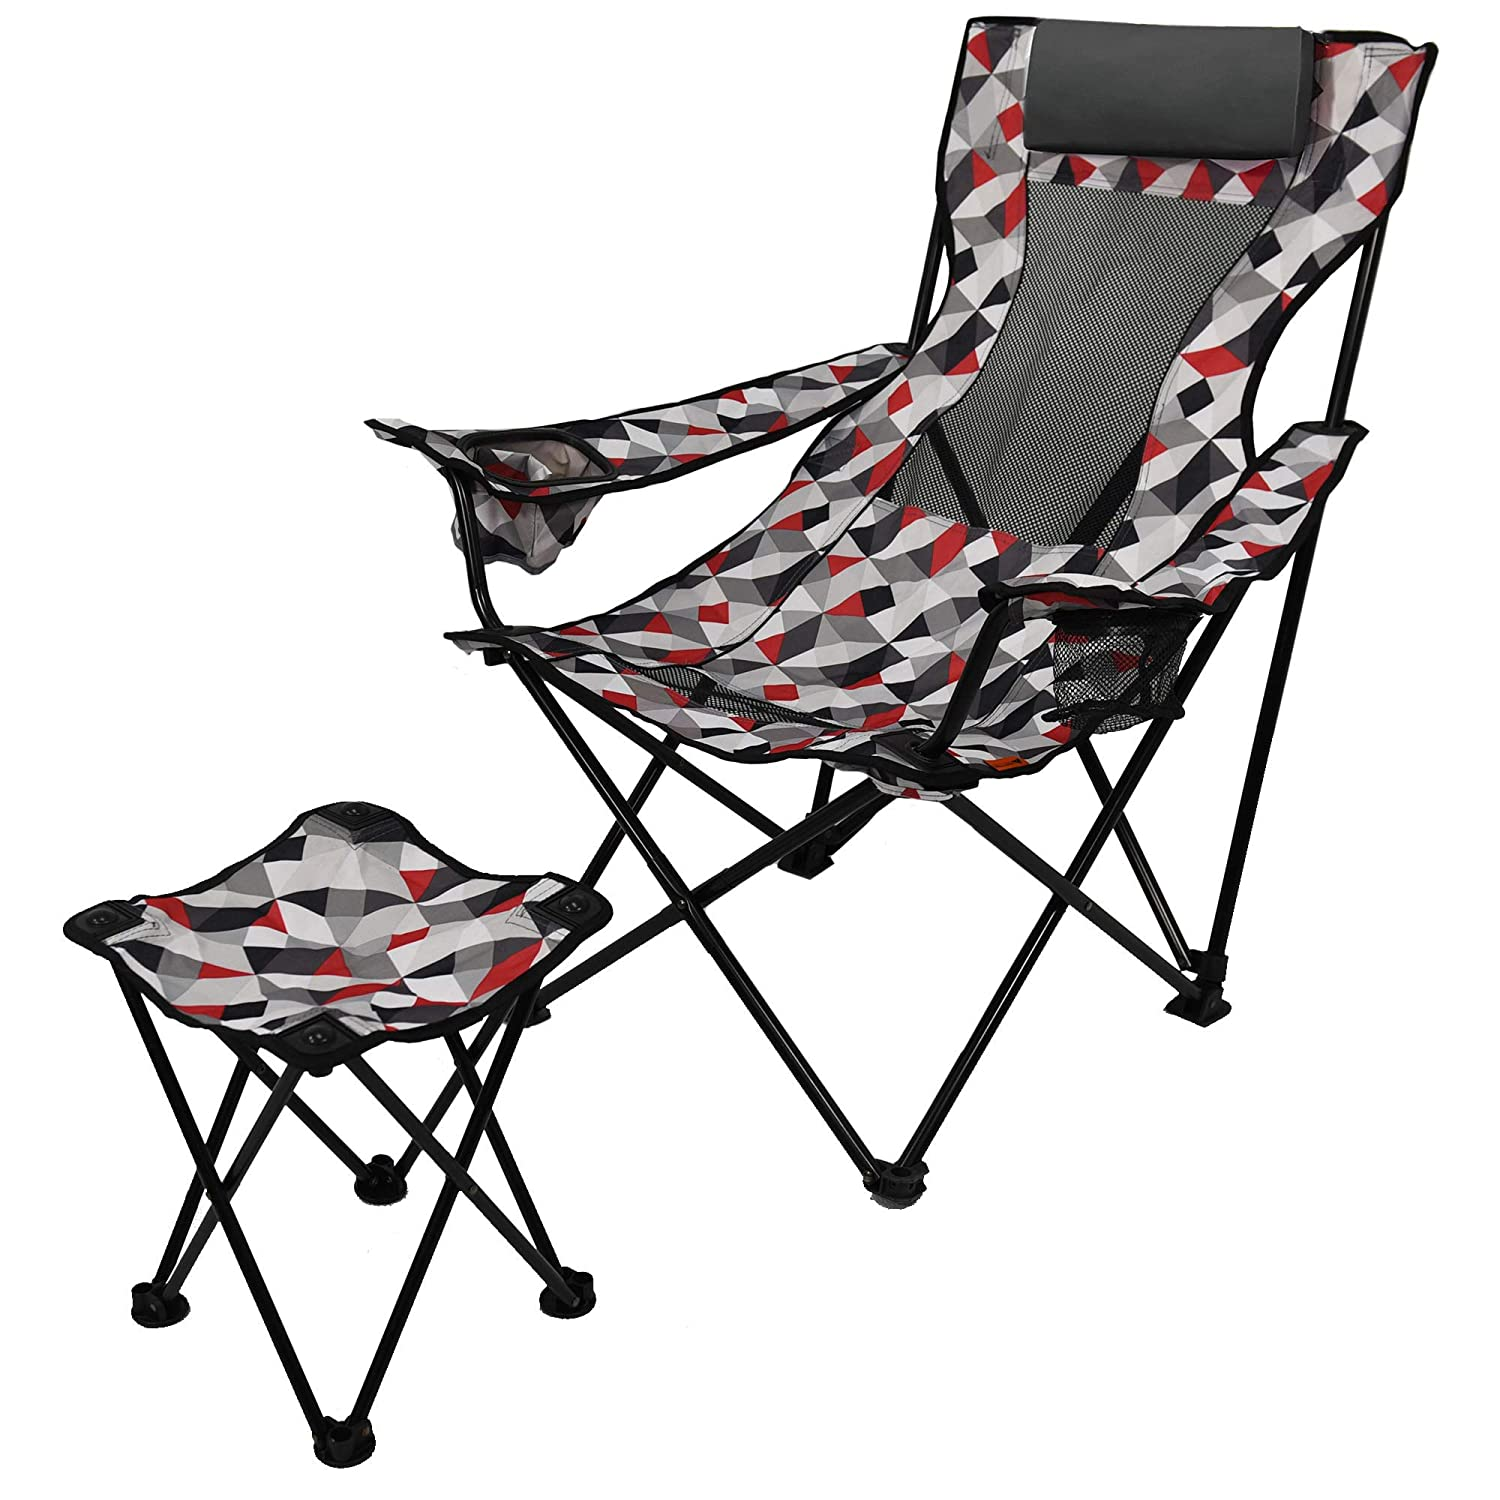 Breathable and Comfortable Ozark Trail Ot Lounge Chair with Detached Footrest,Padded Pillow Headrest,Convenient Cup and Cell Phone Holder,Perfect for Camping and Outdoor Events